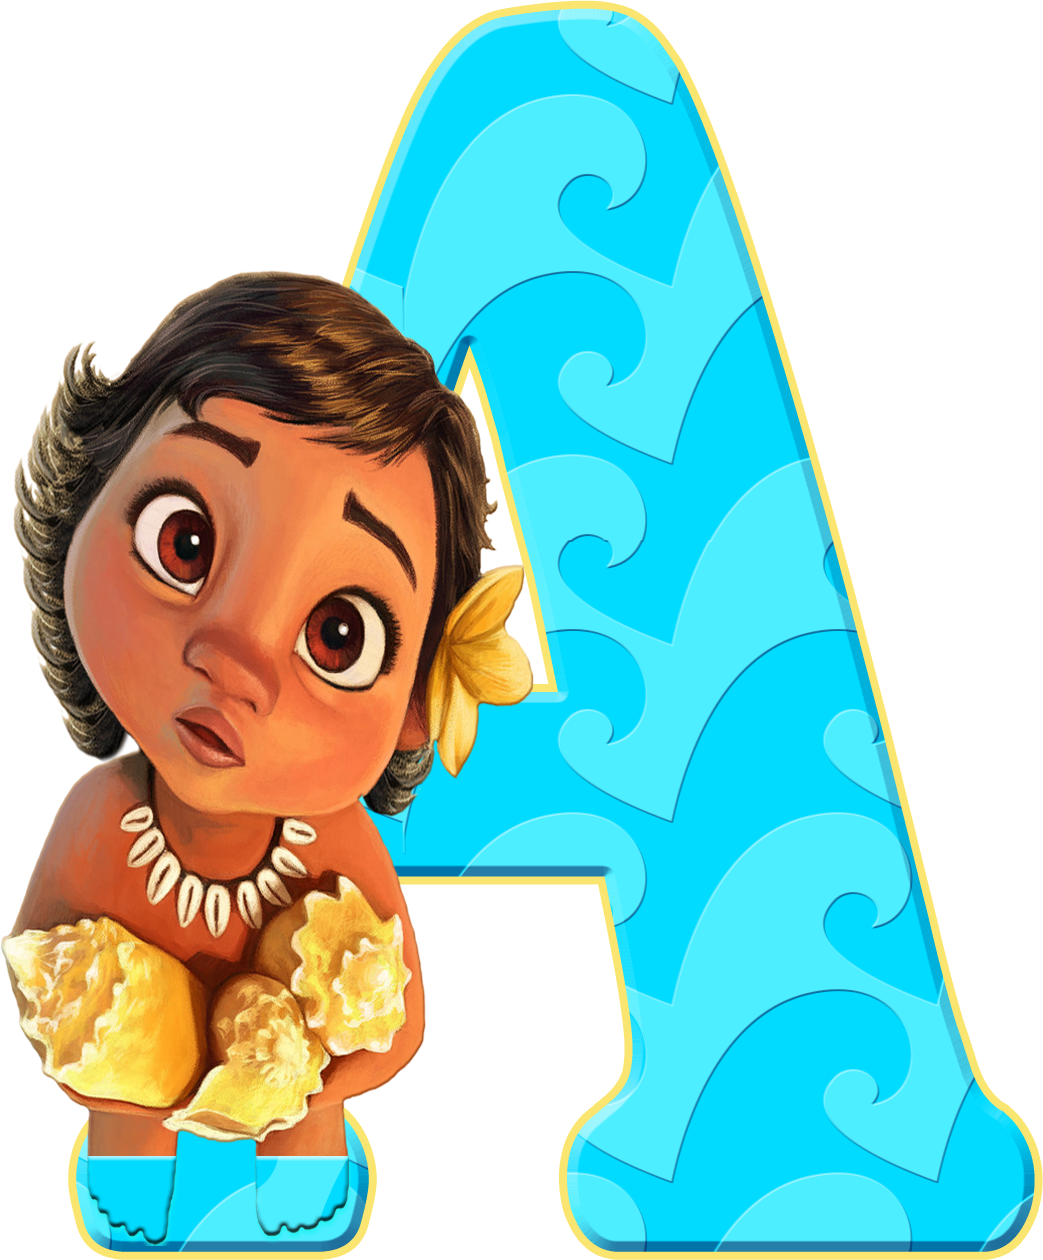 baby moana clipart 46128 free icons and png backgrounds baby elephant clip art free baby elephant clip art images